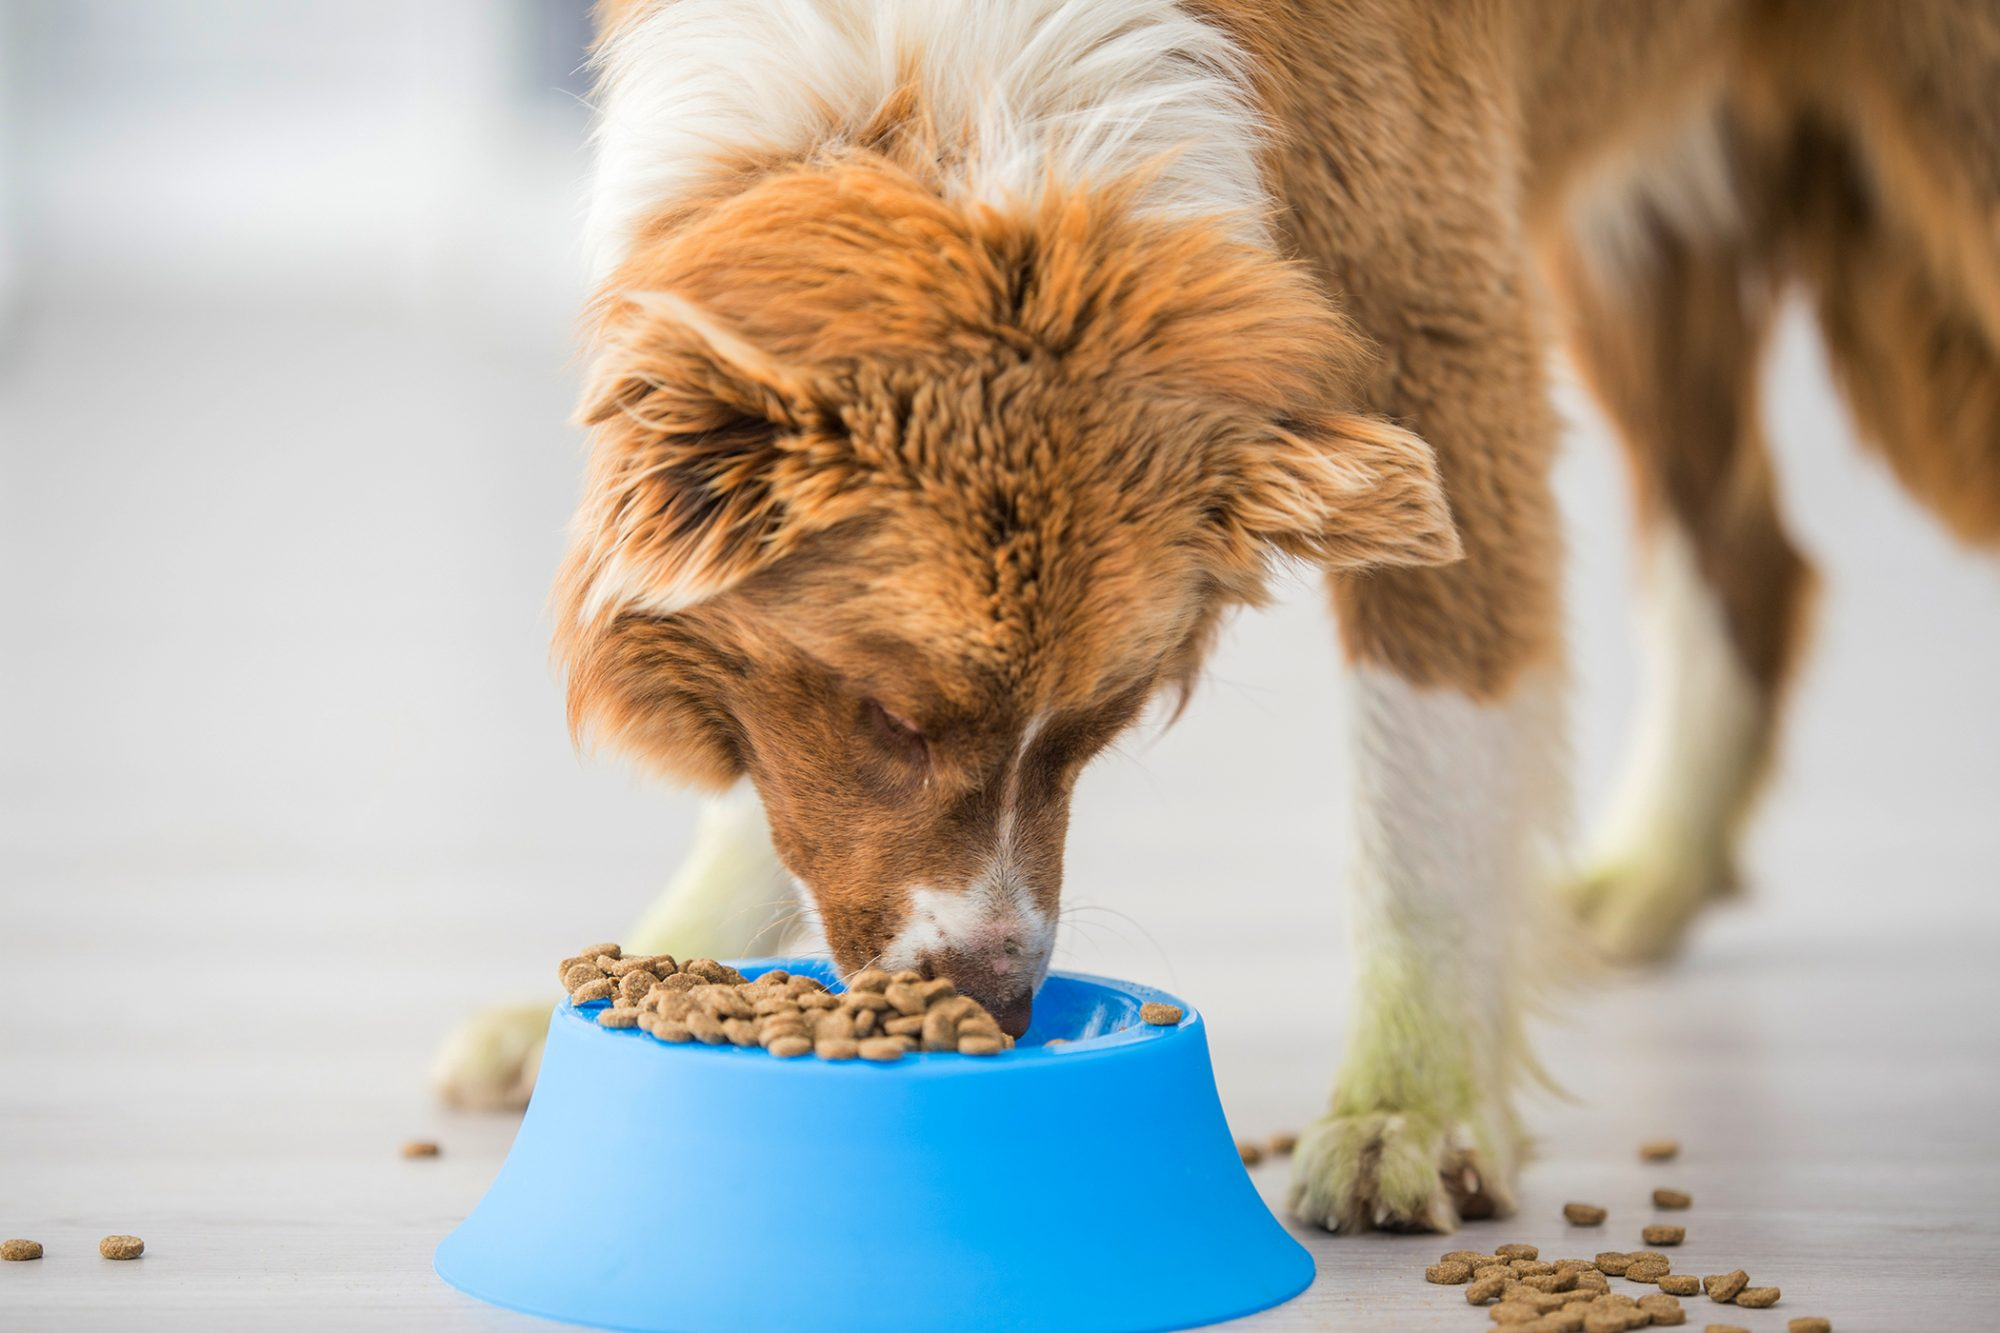 dog eating out of overflowing bowl